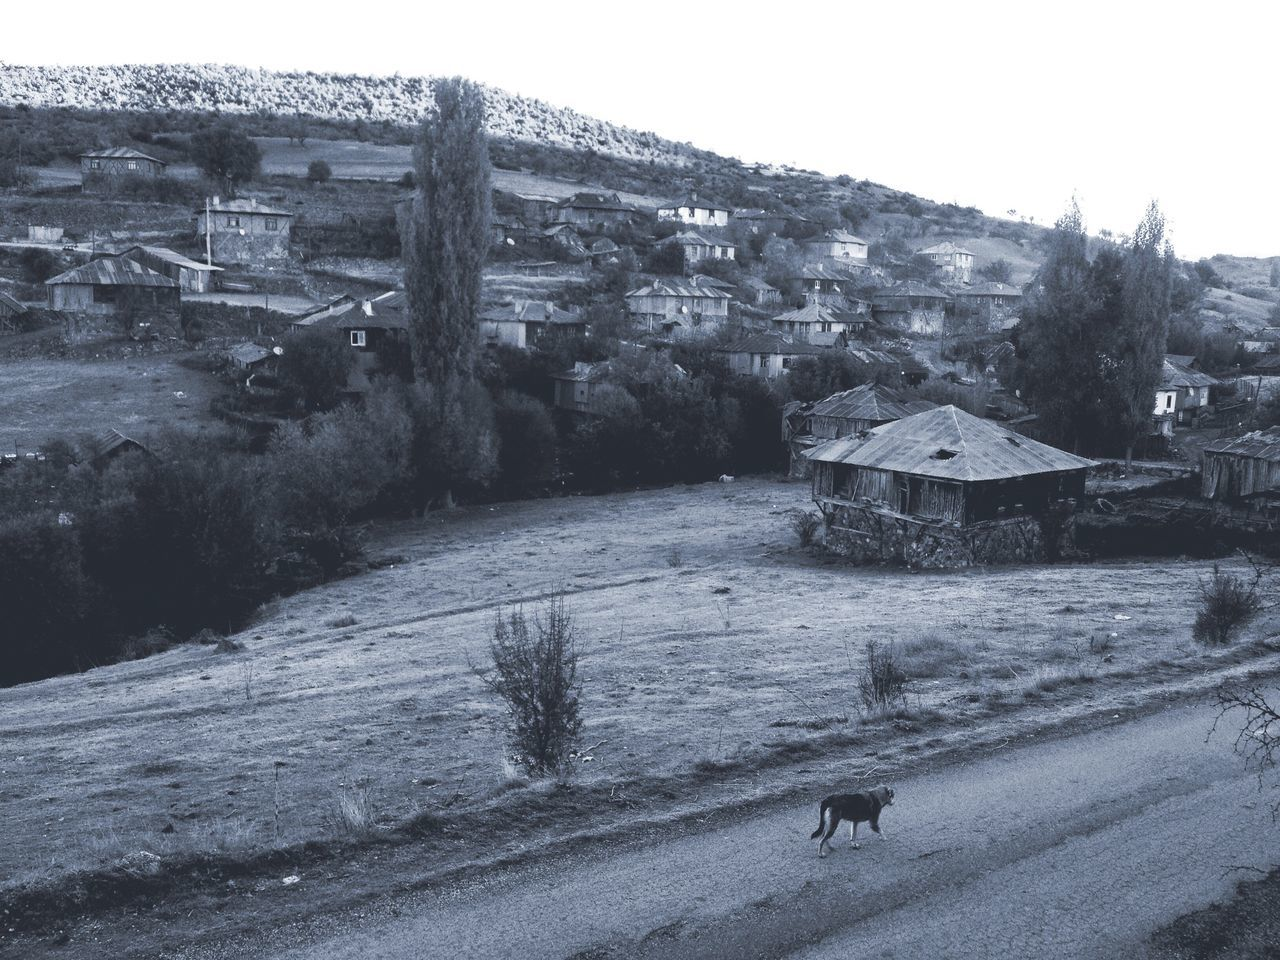 Cold in Village of Geriş EyeEmTurkey . EyeEm Best Shots - Autumn / Fall Autumn Landscape EyeEm Best Shots - Landscape Blackandwhite Black And White Rural Landscape Rural Village Life